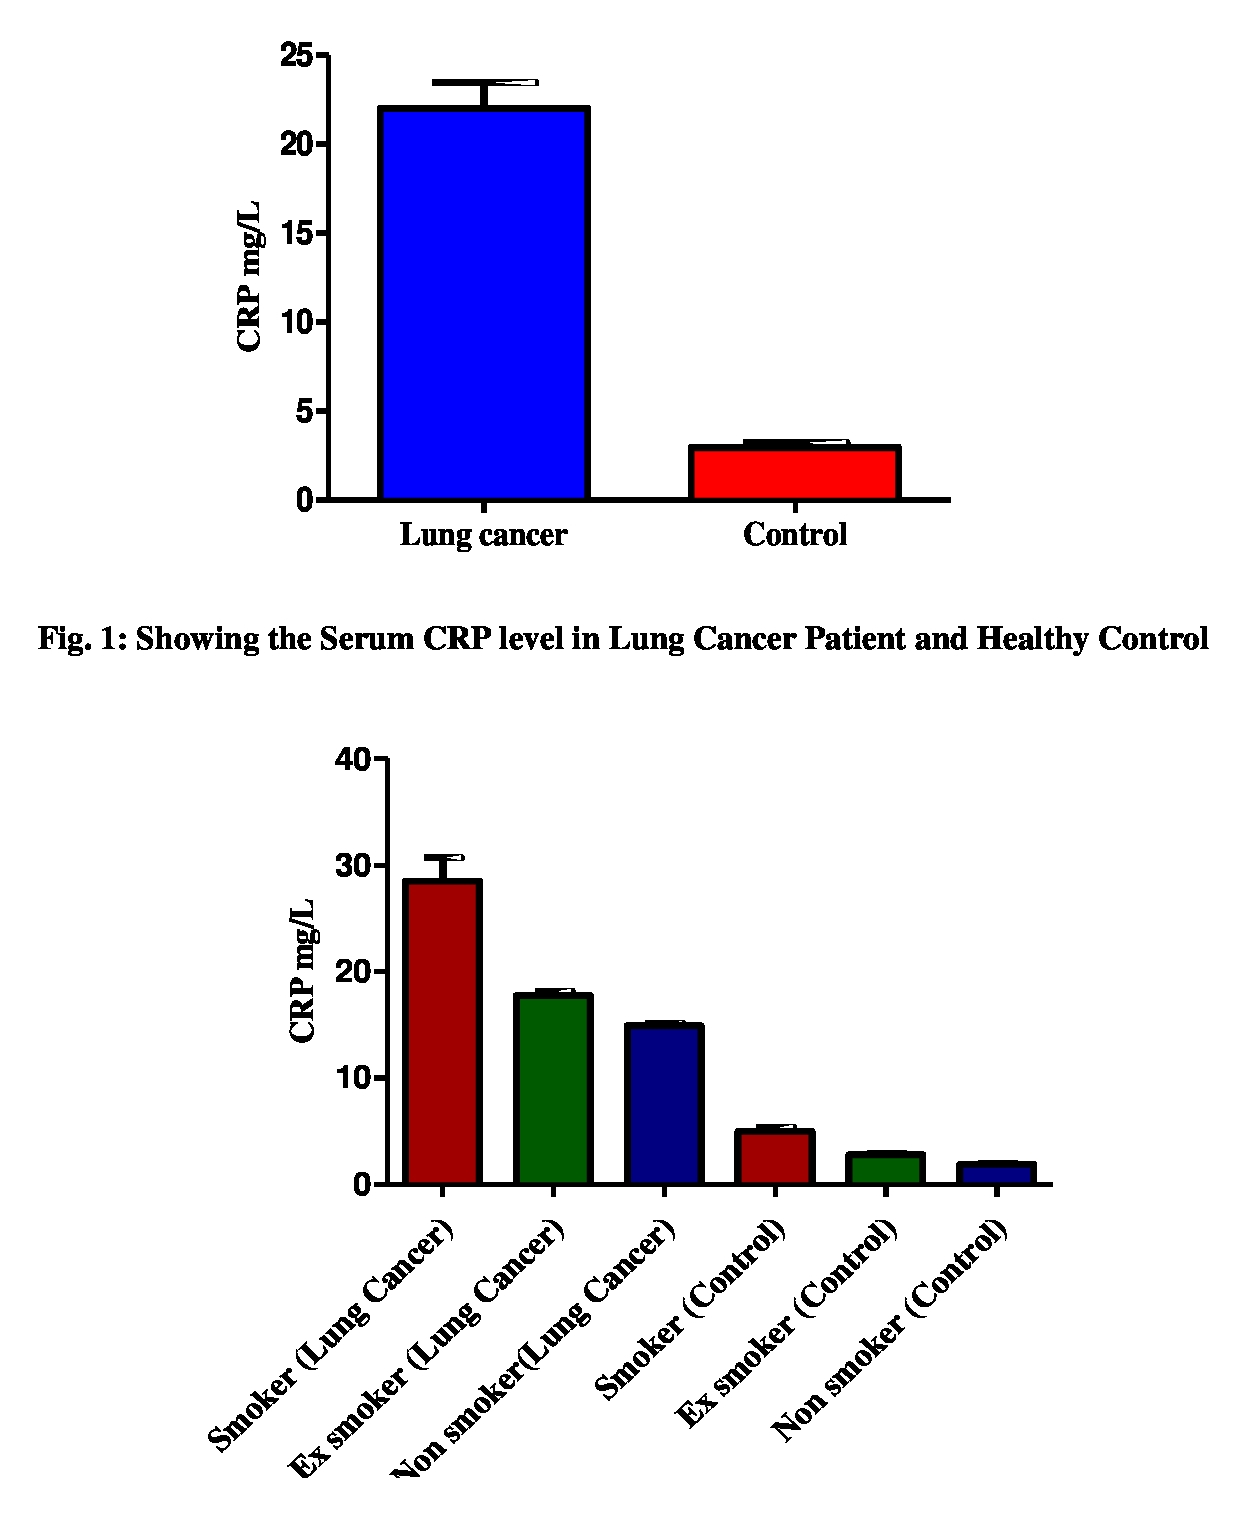 Research Article Open Access Int J Life Sci Scienti Res 4 2 1698 1702 March 2018 Association Of Serum Crp Level With Lung Cancer And Healthy Control Of North Indian Population Priyanka Gaur1 Sarika Pandey2 Sandeep Bhattacharya1 Surya